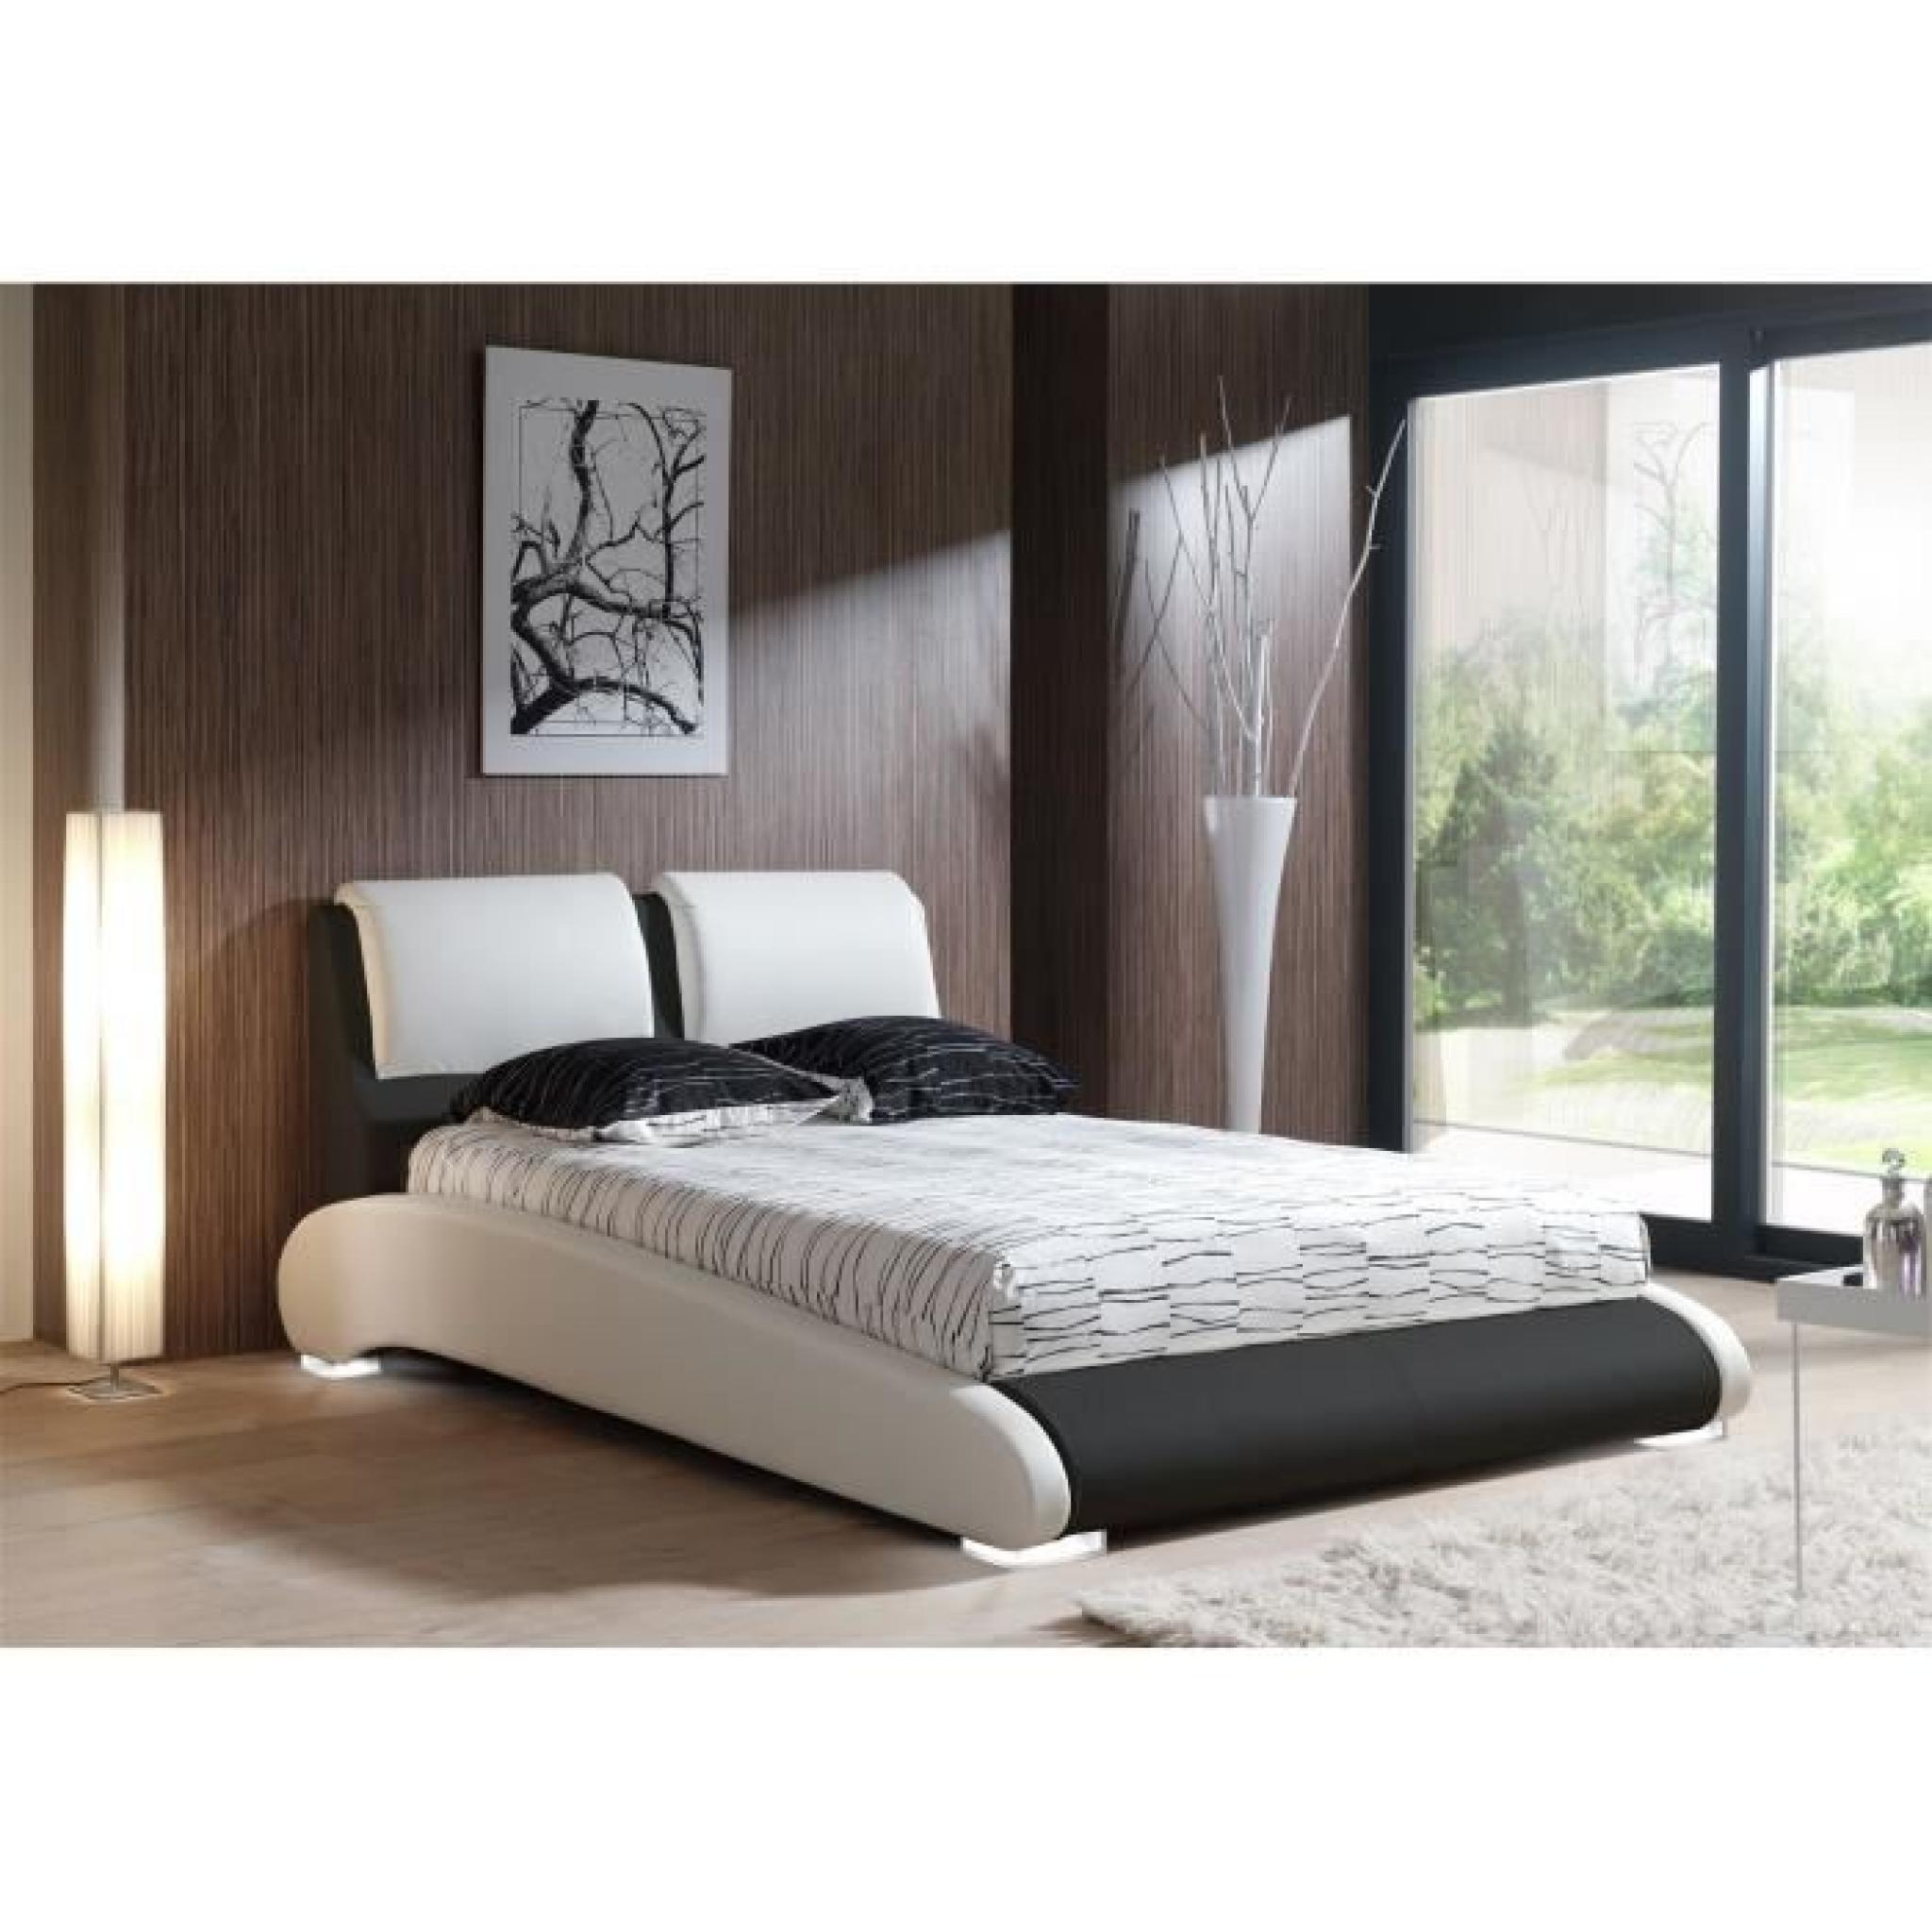 maxi lit adulte sommier 160x200 blanc noir pieds led. Black Bedroom Furniture Sets. Home Design Ideas